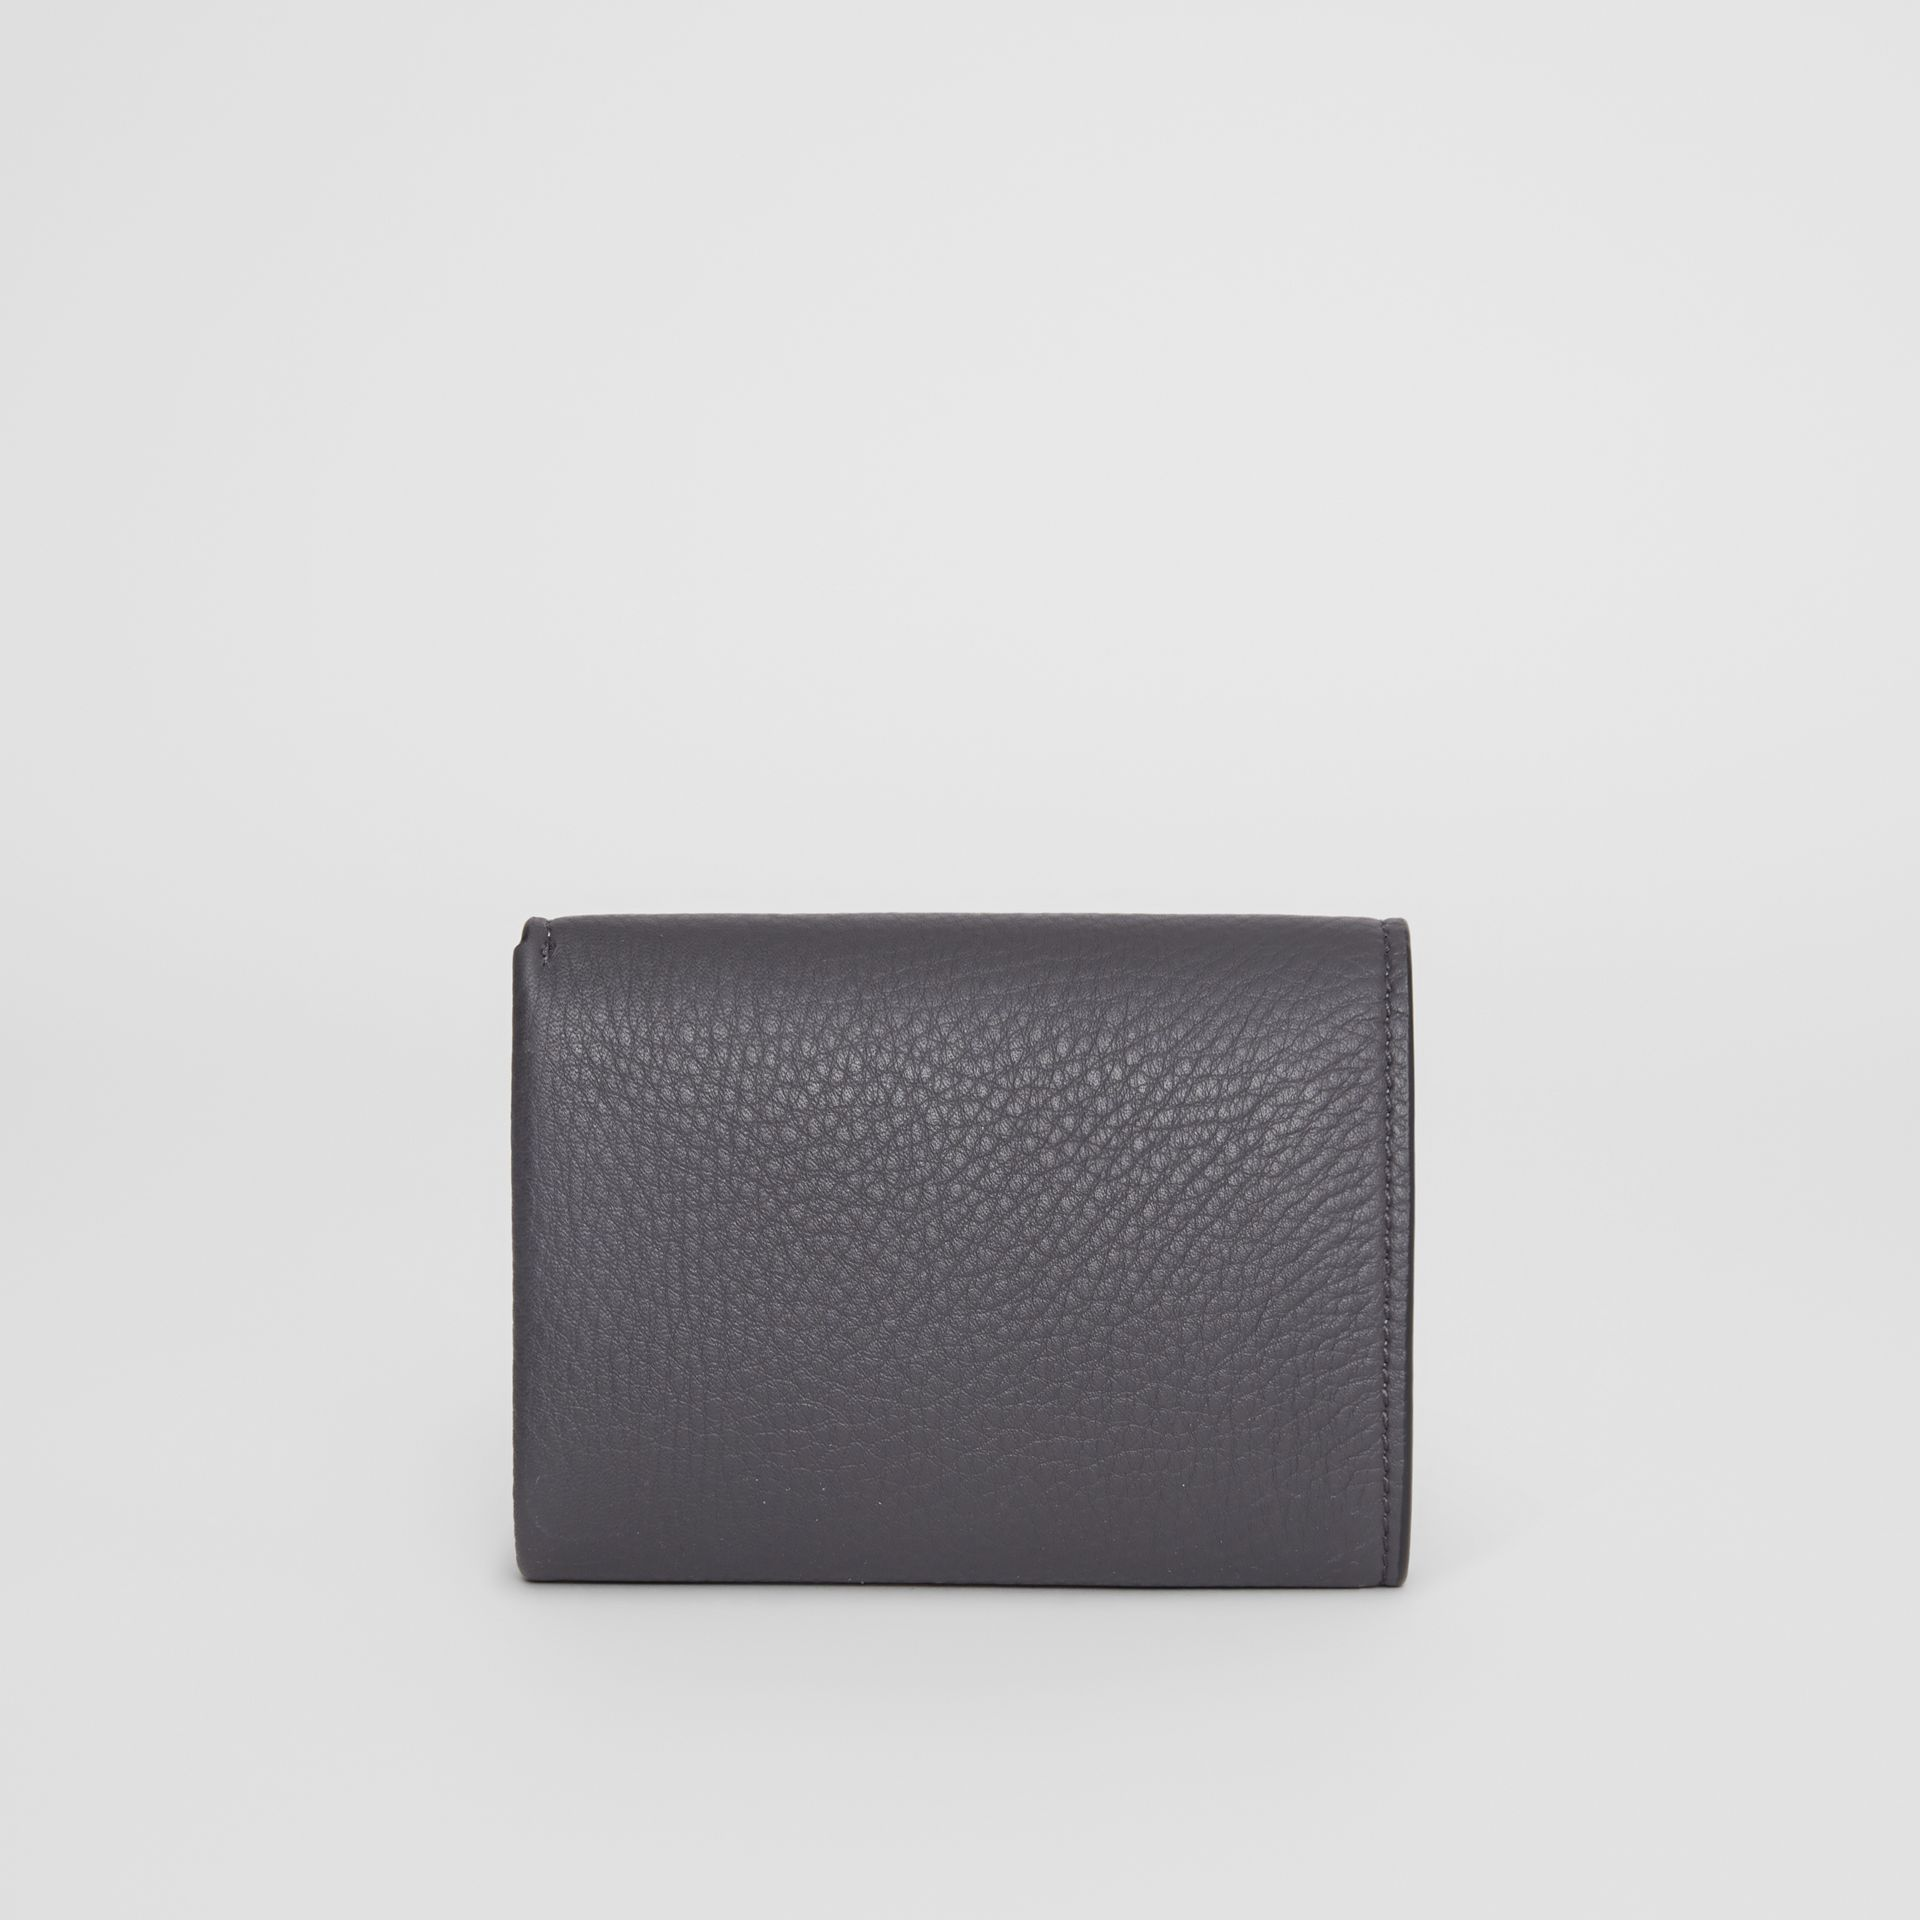 Small Leather Folding Wallet in Charcoal Grey - Women | Burberry - gallery image 4